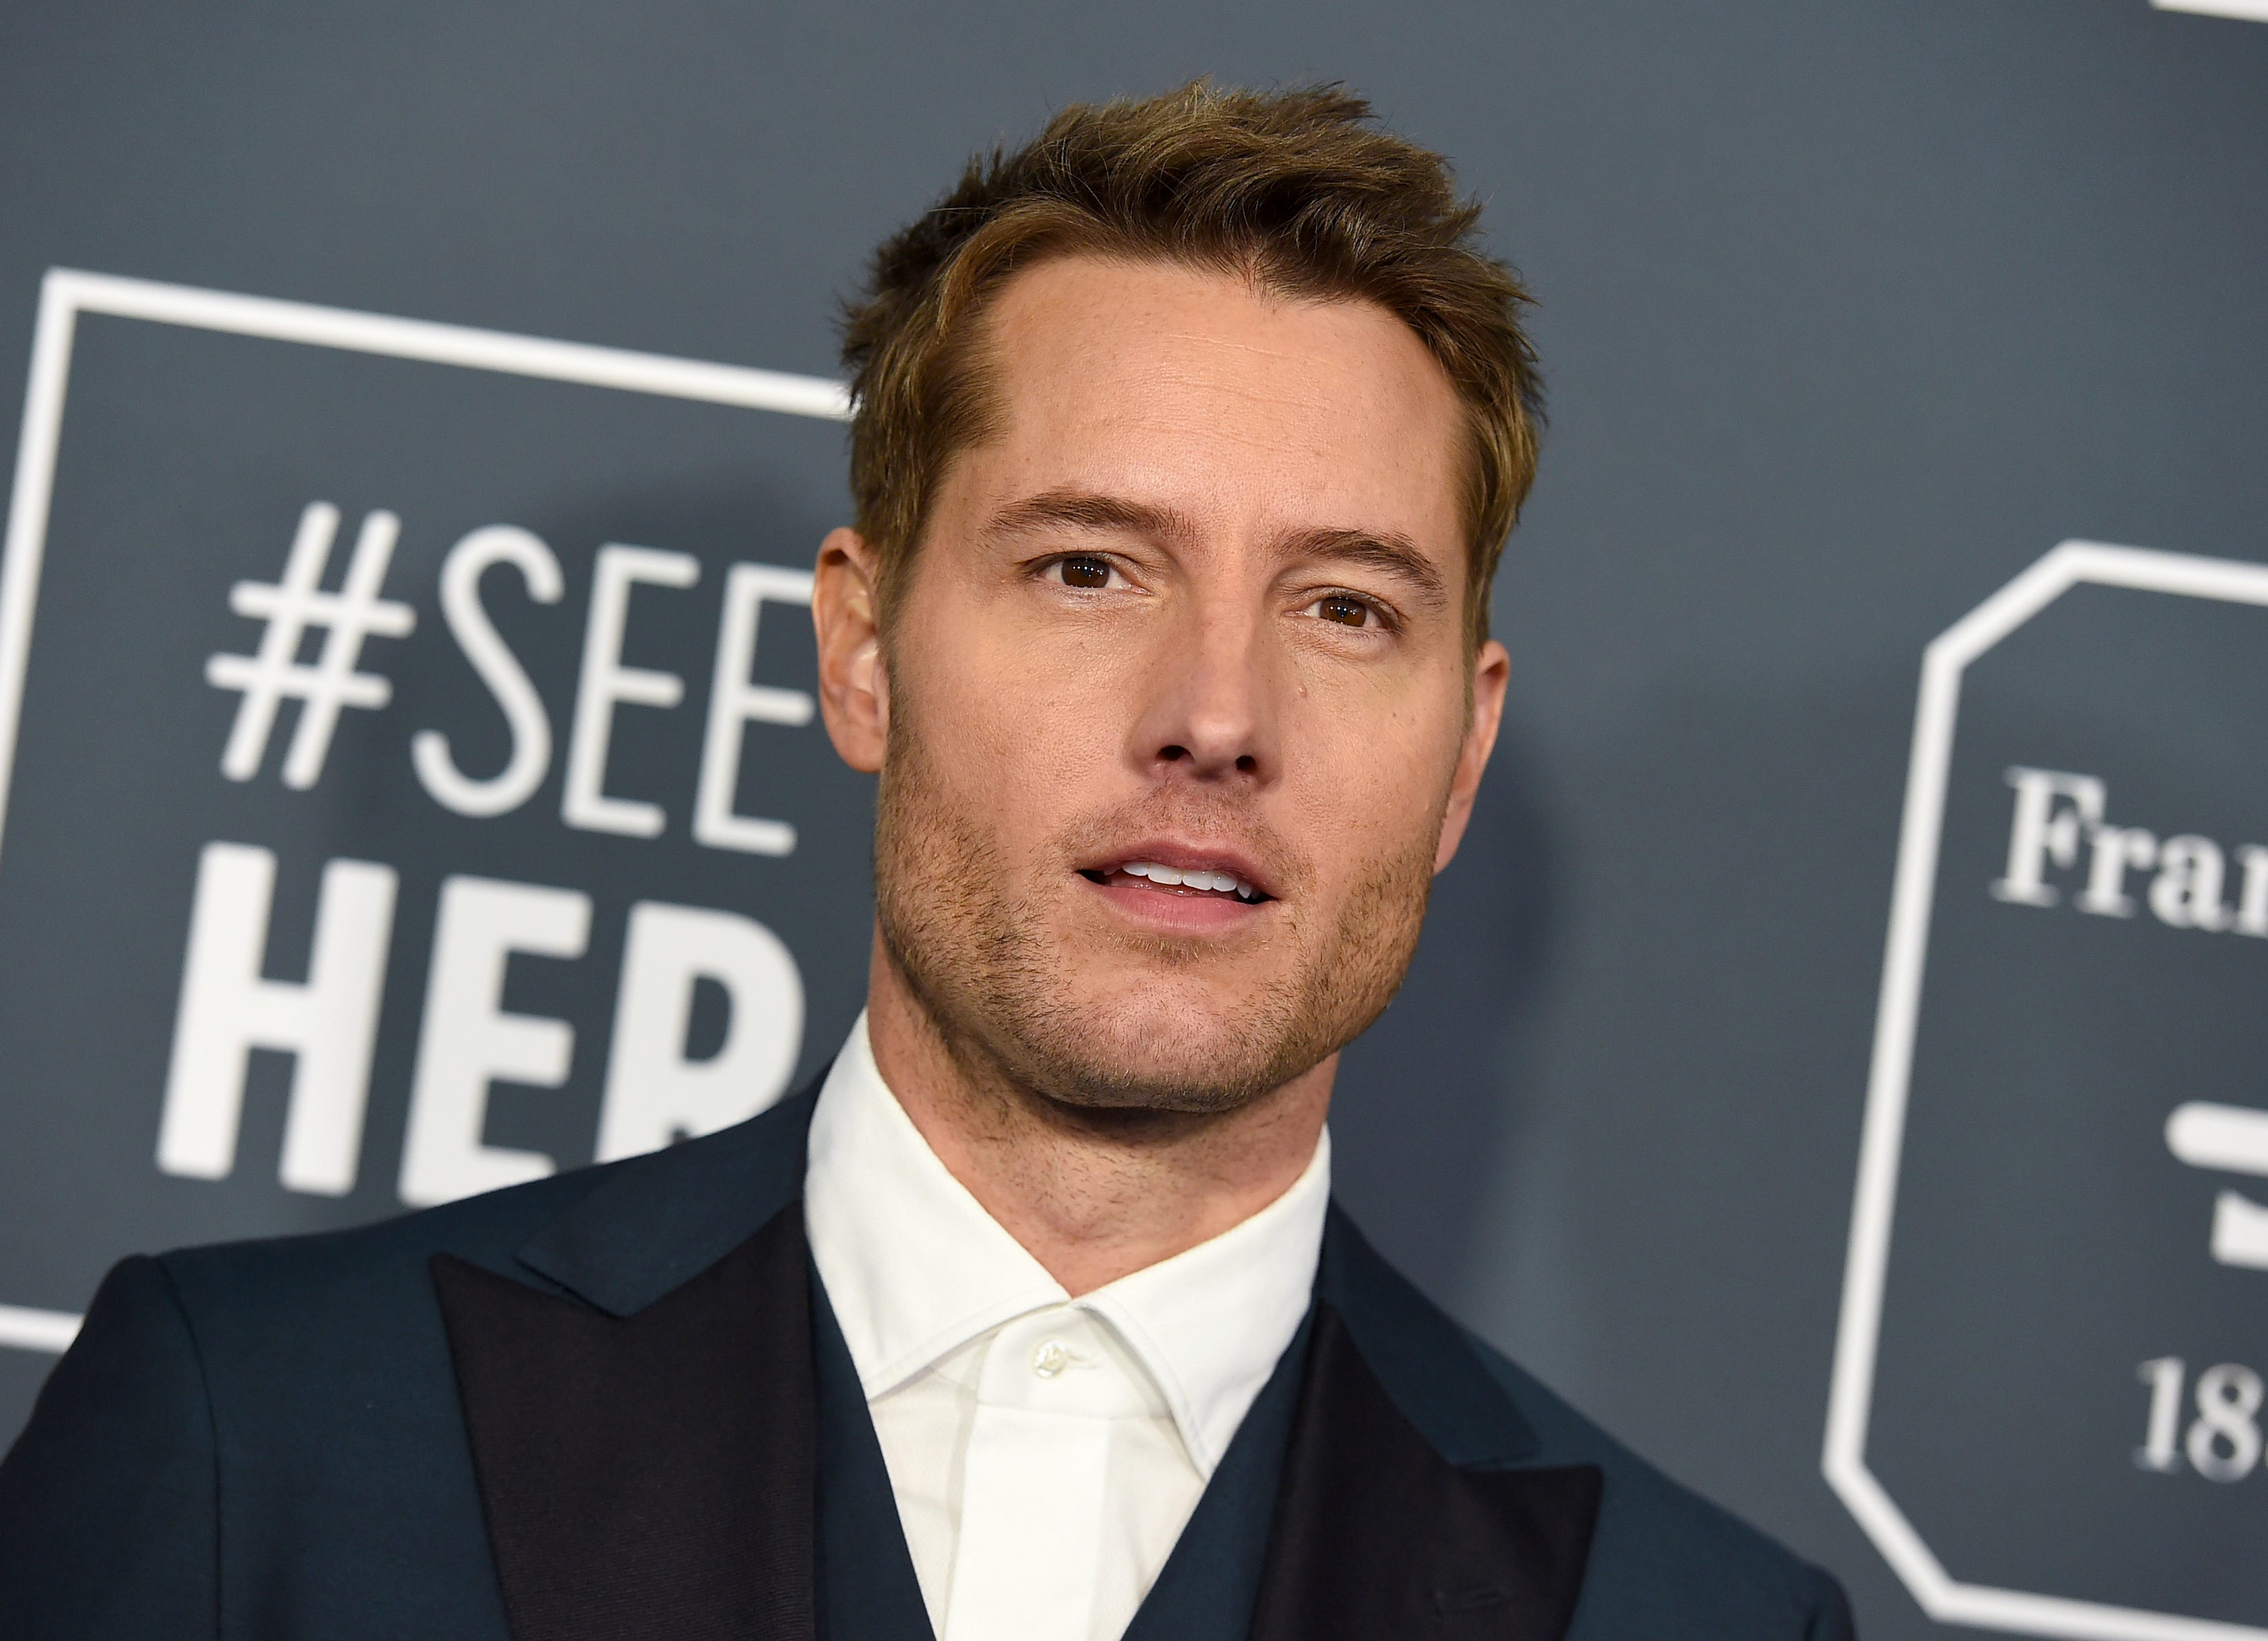 This Is Us  star Justin Hartley, Sofia Pernas are Instagram official with New Year s selfies